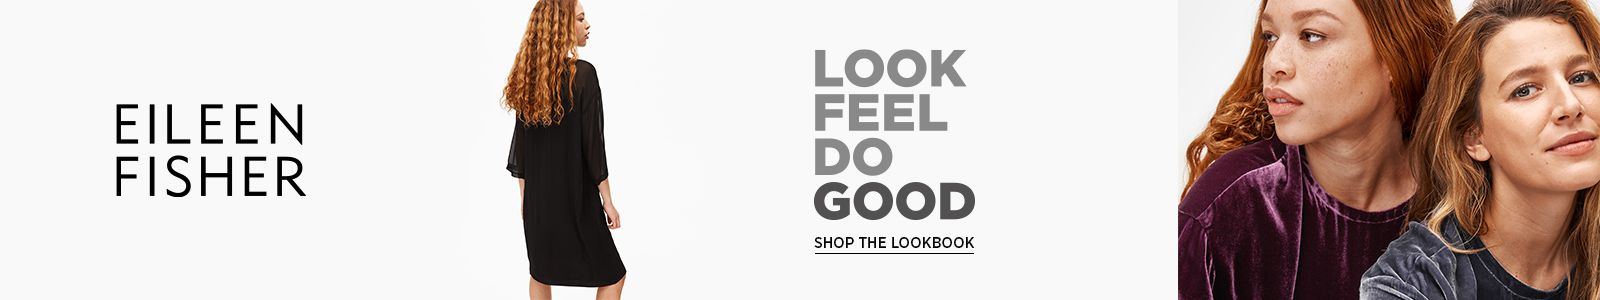 Eileen Fisher, Look Feel do Good, Shop The Lookbook